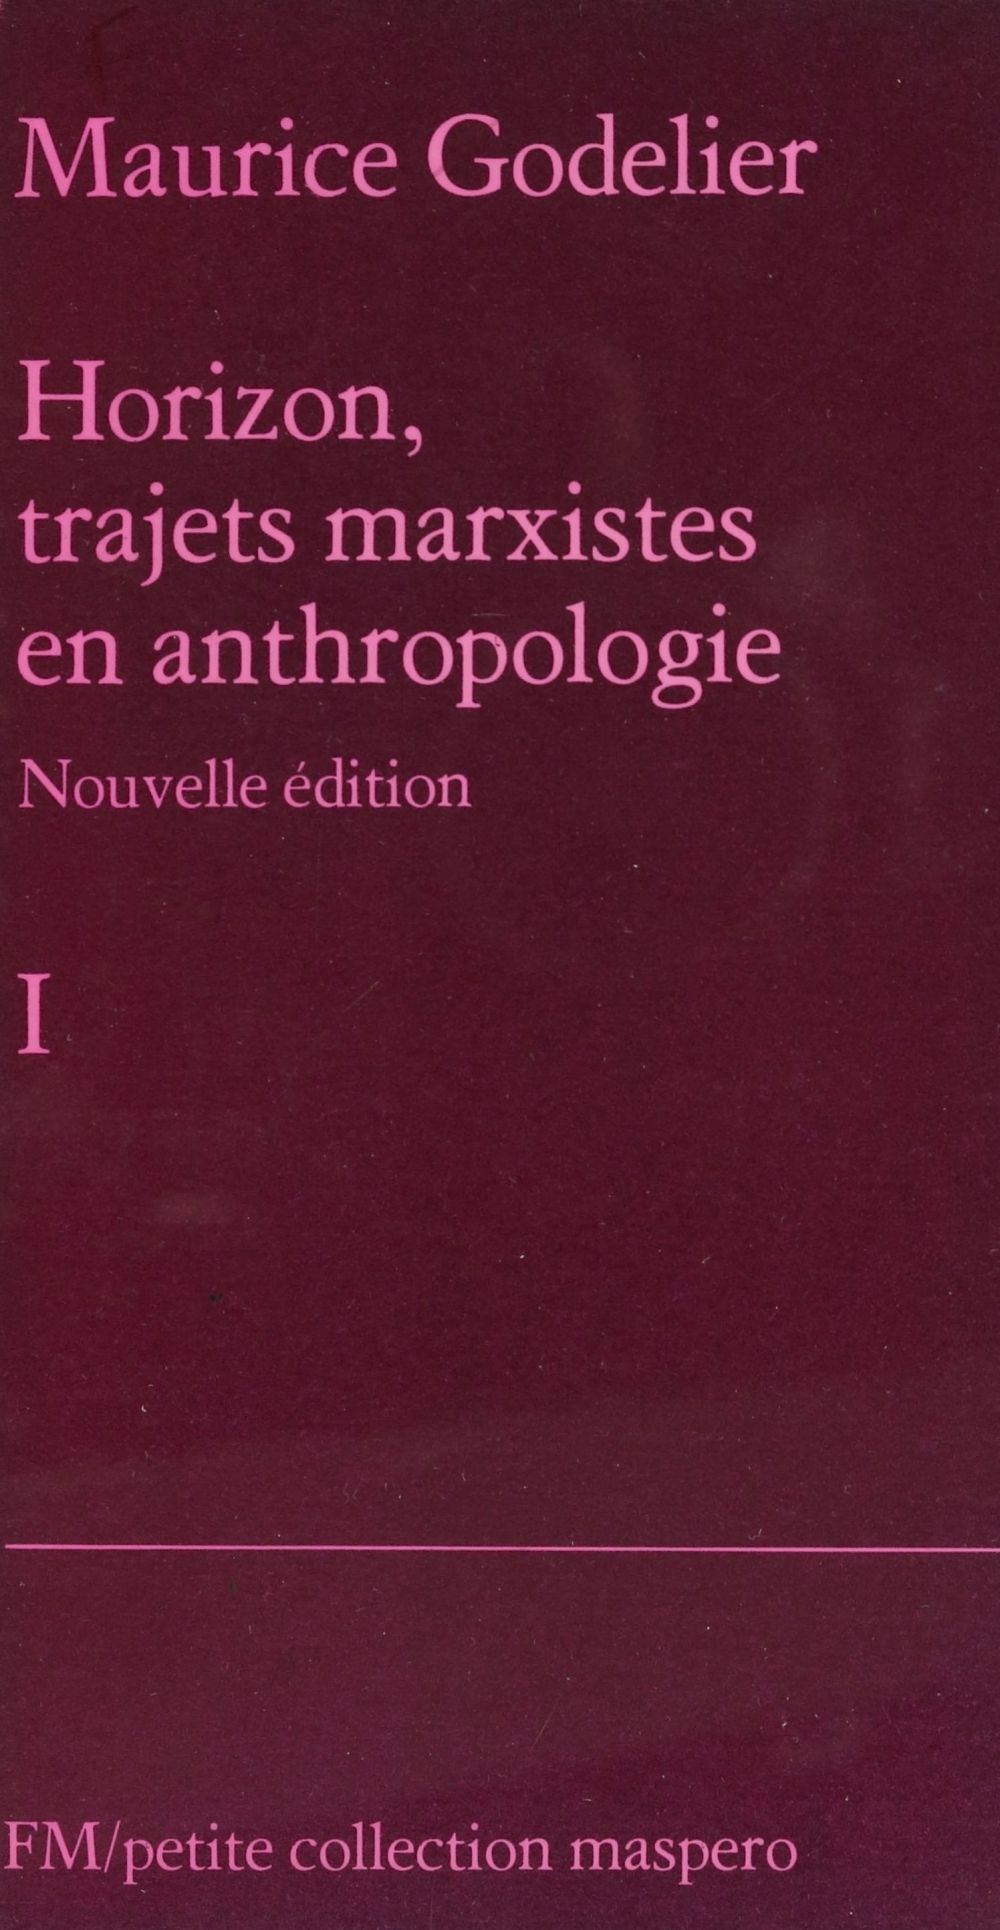 Horizon, trajets marxistes en anthropologie (1)